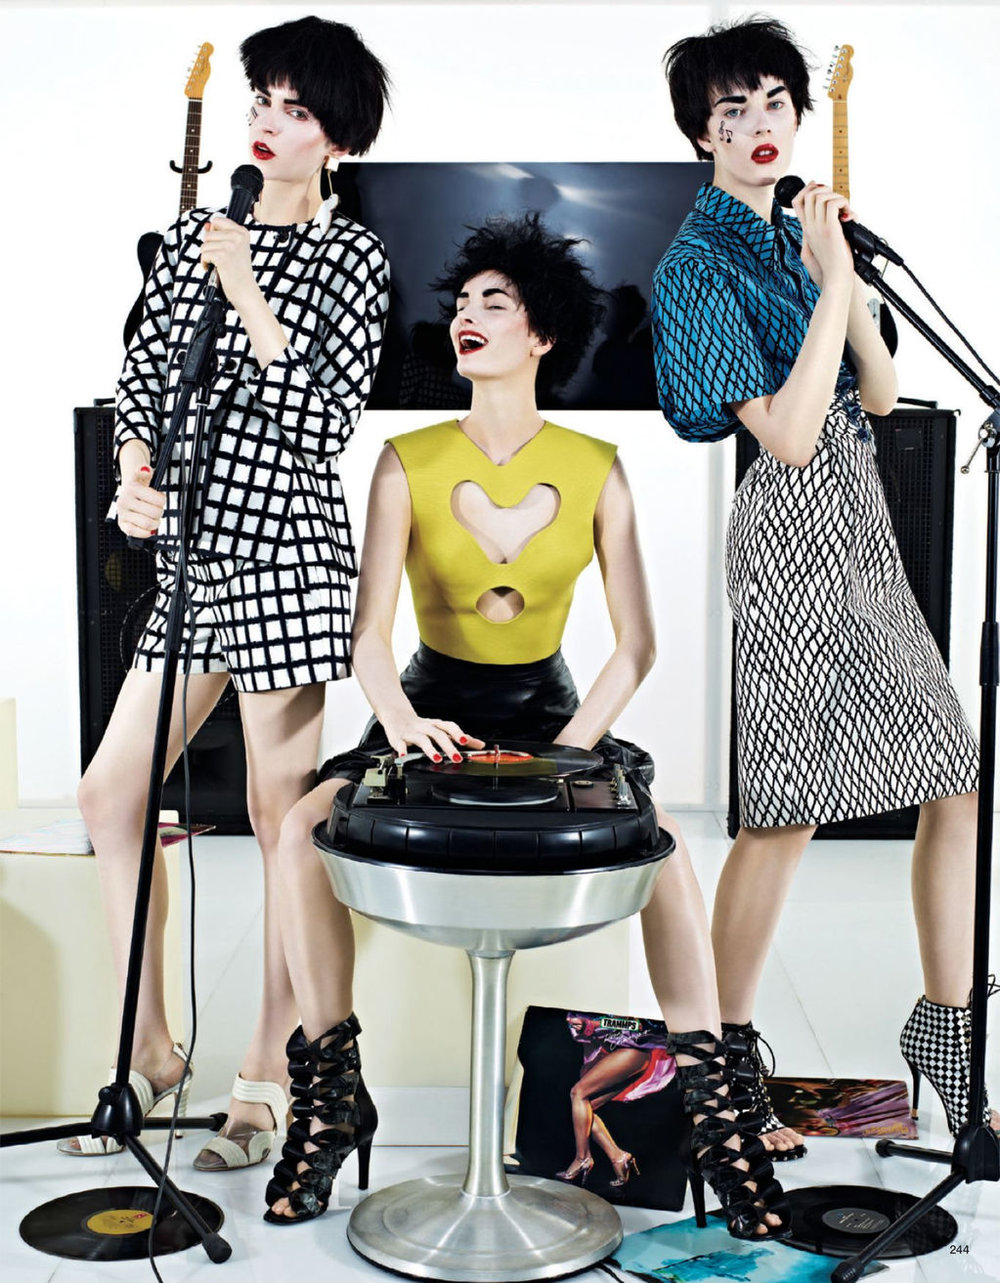 Giovanna-Battaglia-3-Girls-in-the-Band-Vogue-Japan-Sharif-Hamza.jpg